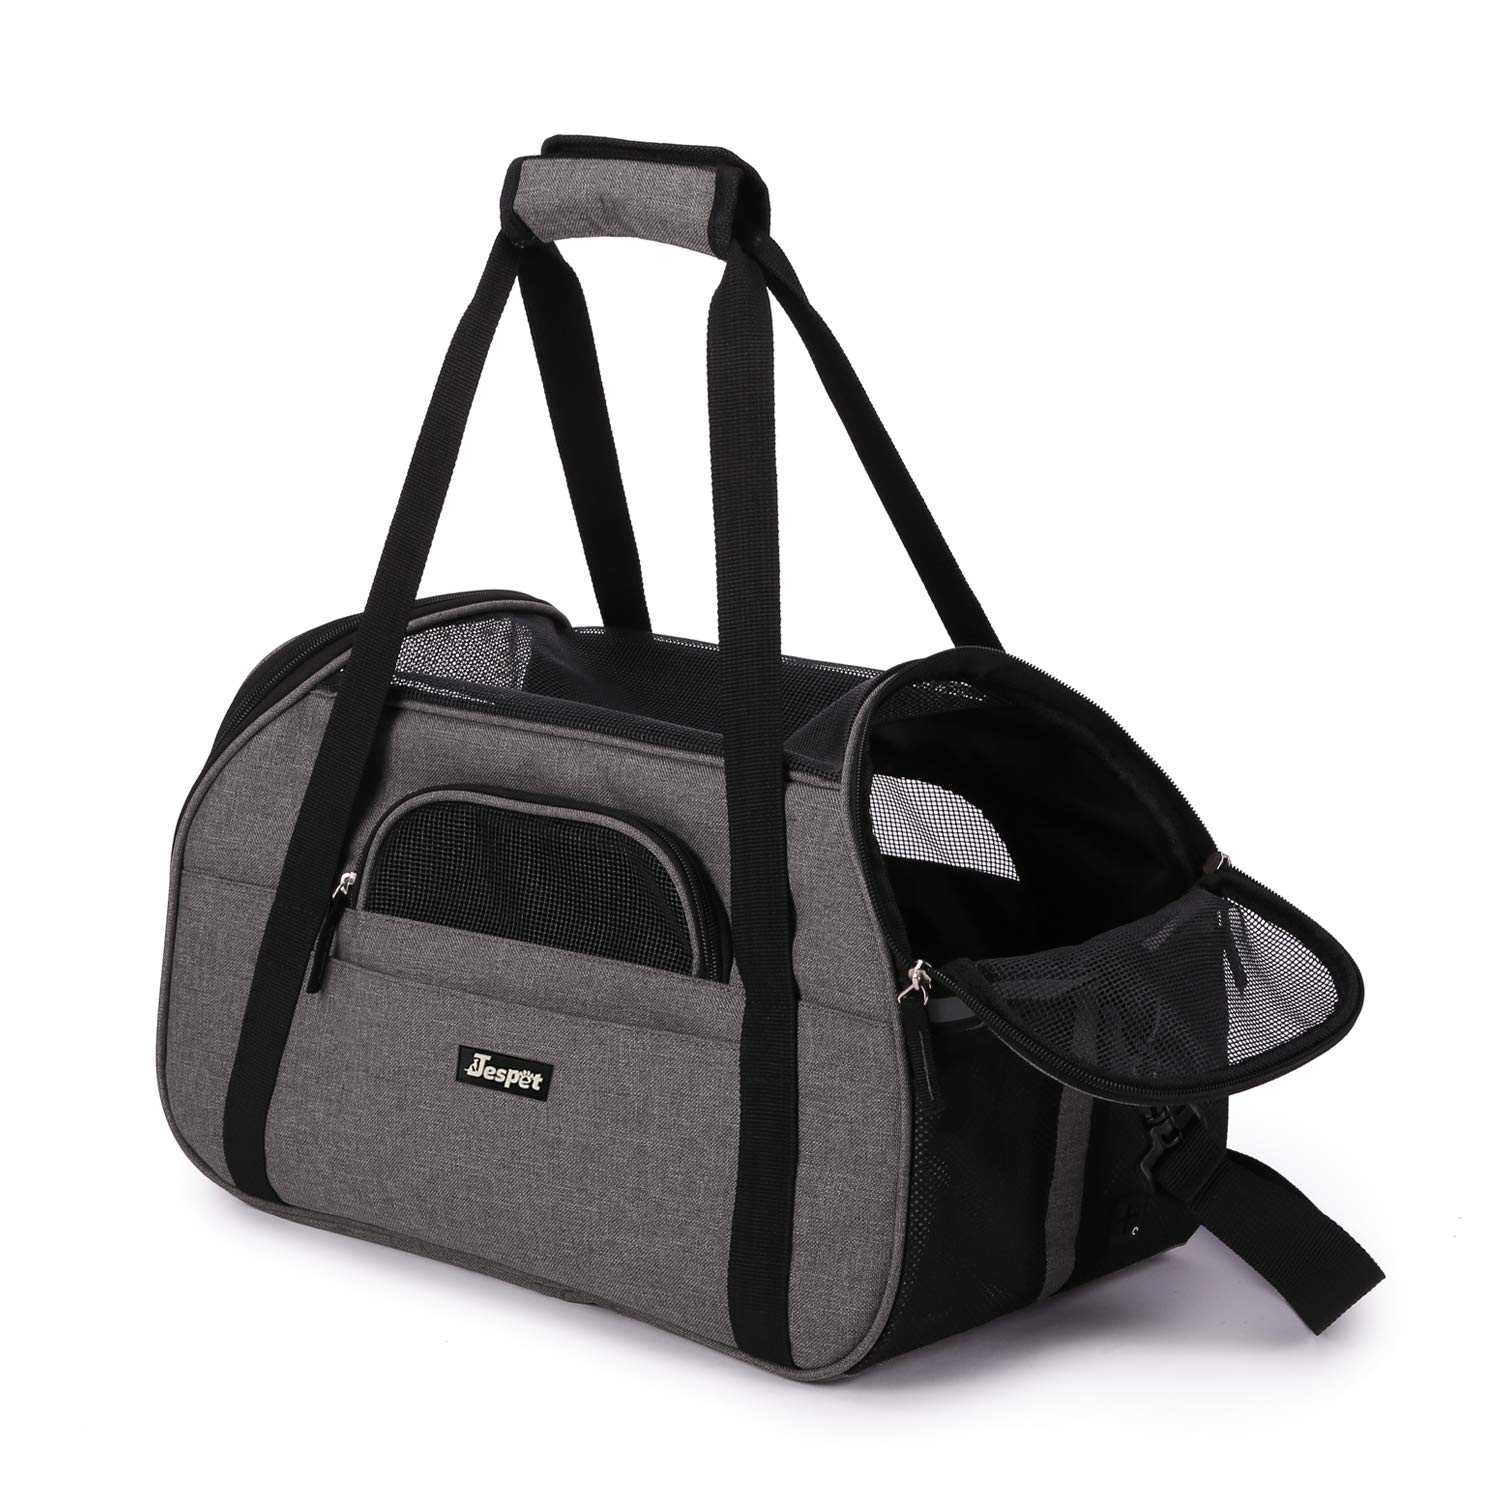 3069f50897 Amazon.com : JESPET Soft Pet Carrier for Small Dogs, Cats, Puppy, 17